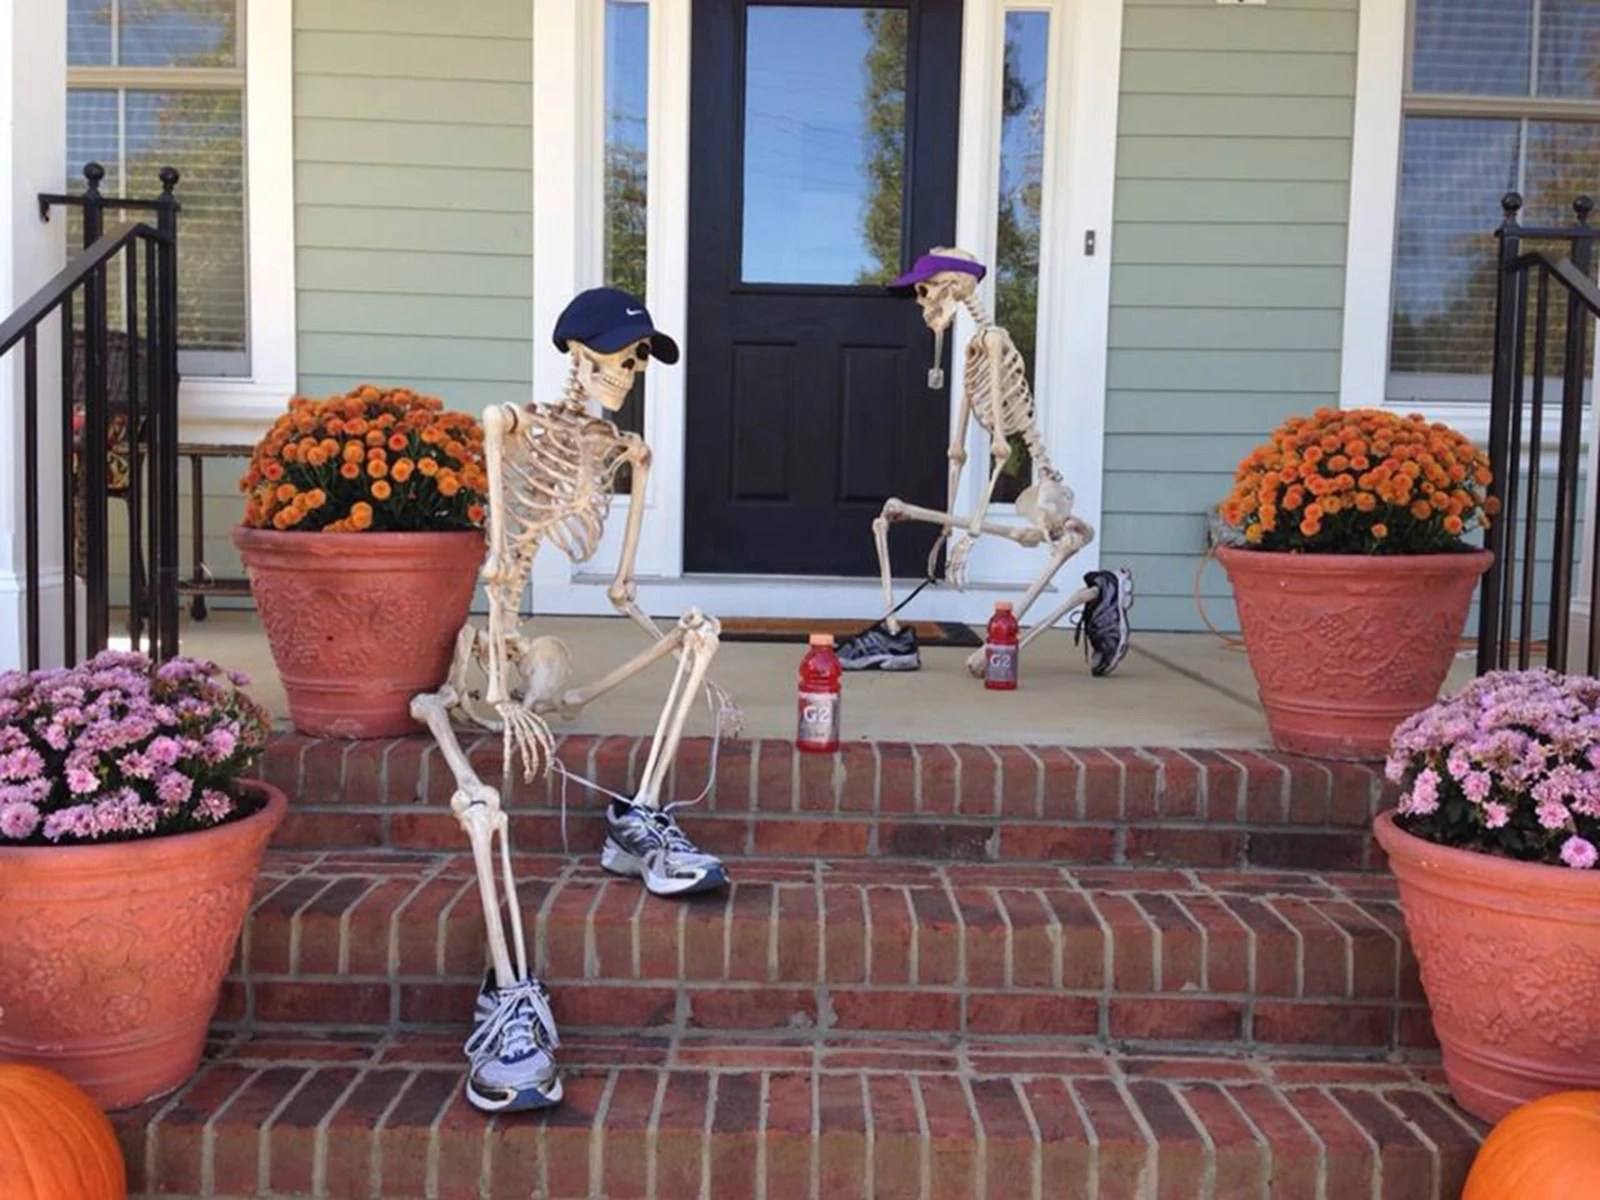 kids foam chair hanging kohls couple decorates house with skeleton scenes - today.com